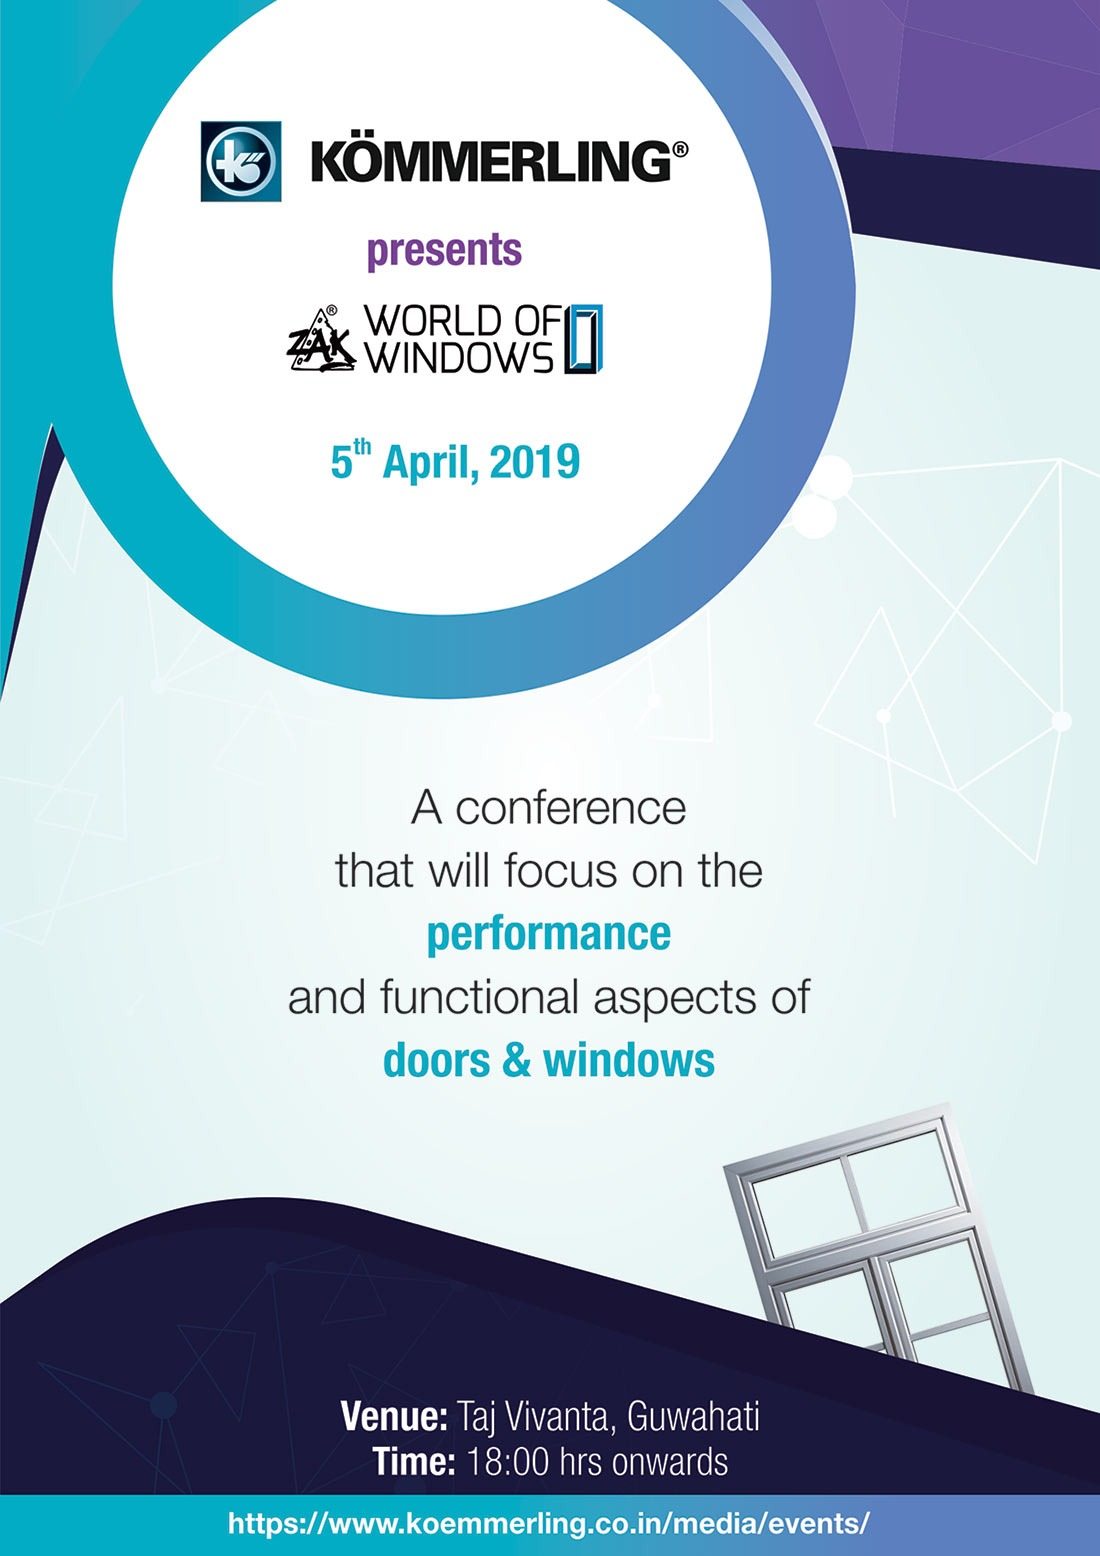 Zak World of Windows, 5th April, 2019